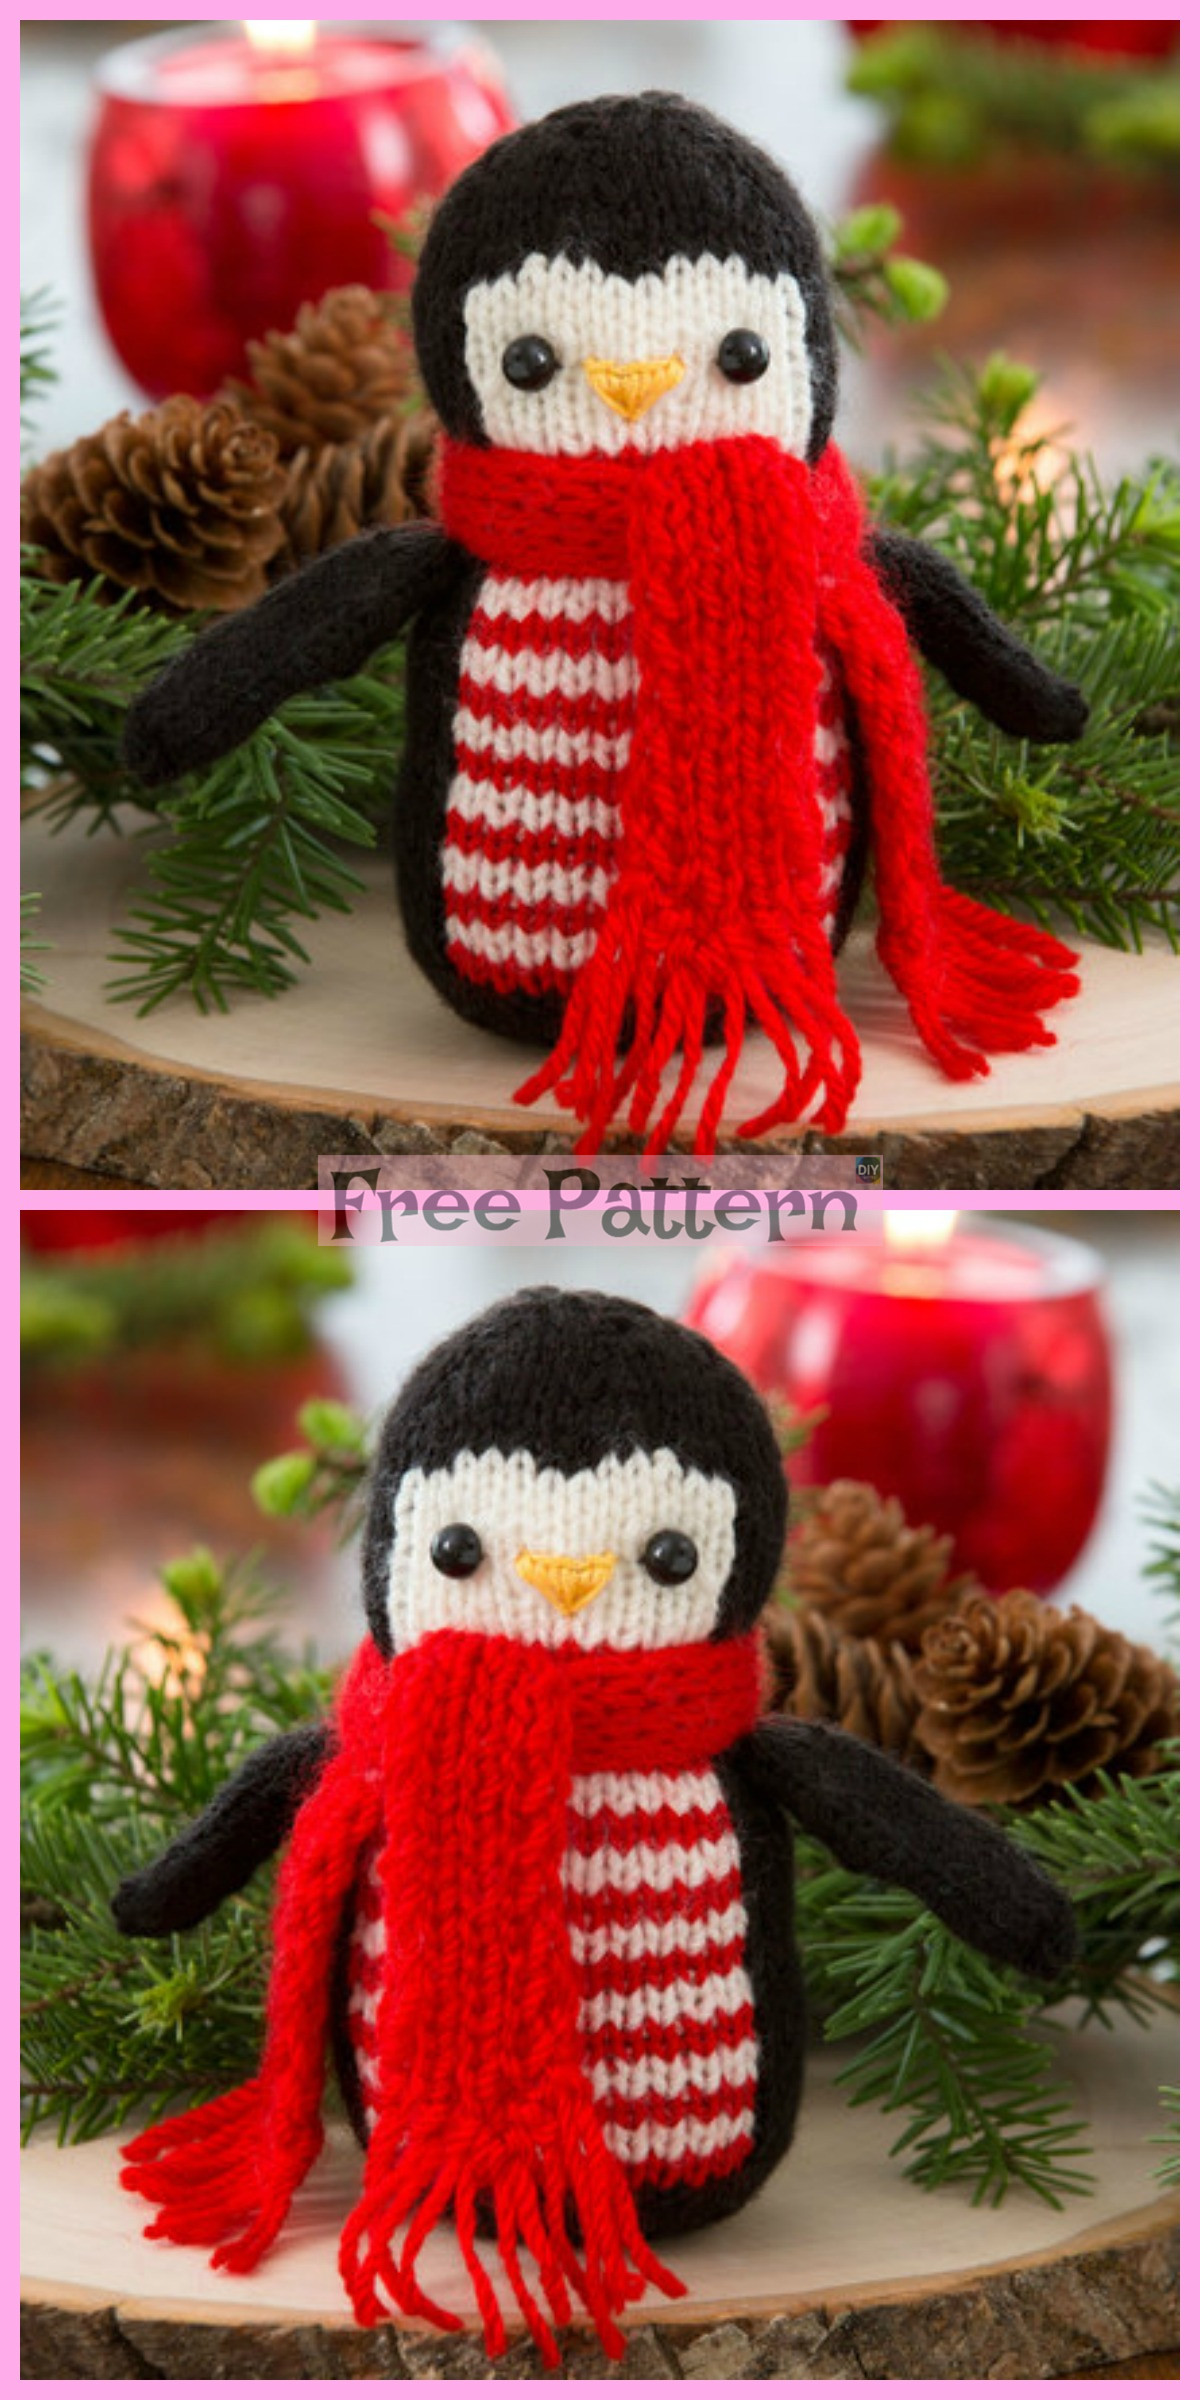 diy4ever-Knit Cheerful Holiday Penguin - Free Pattern